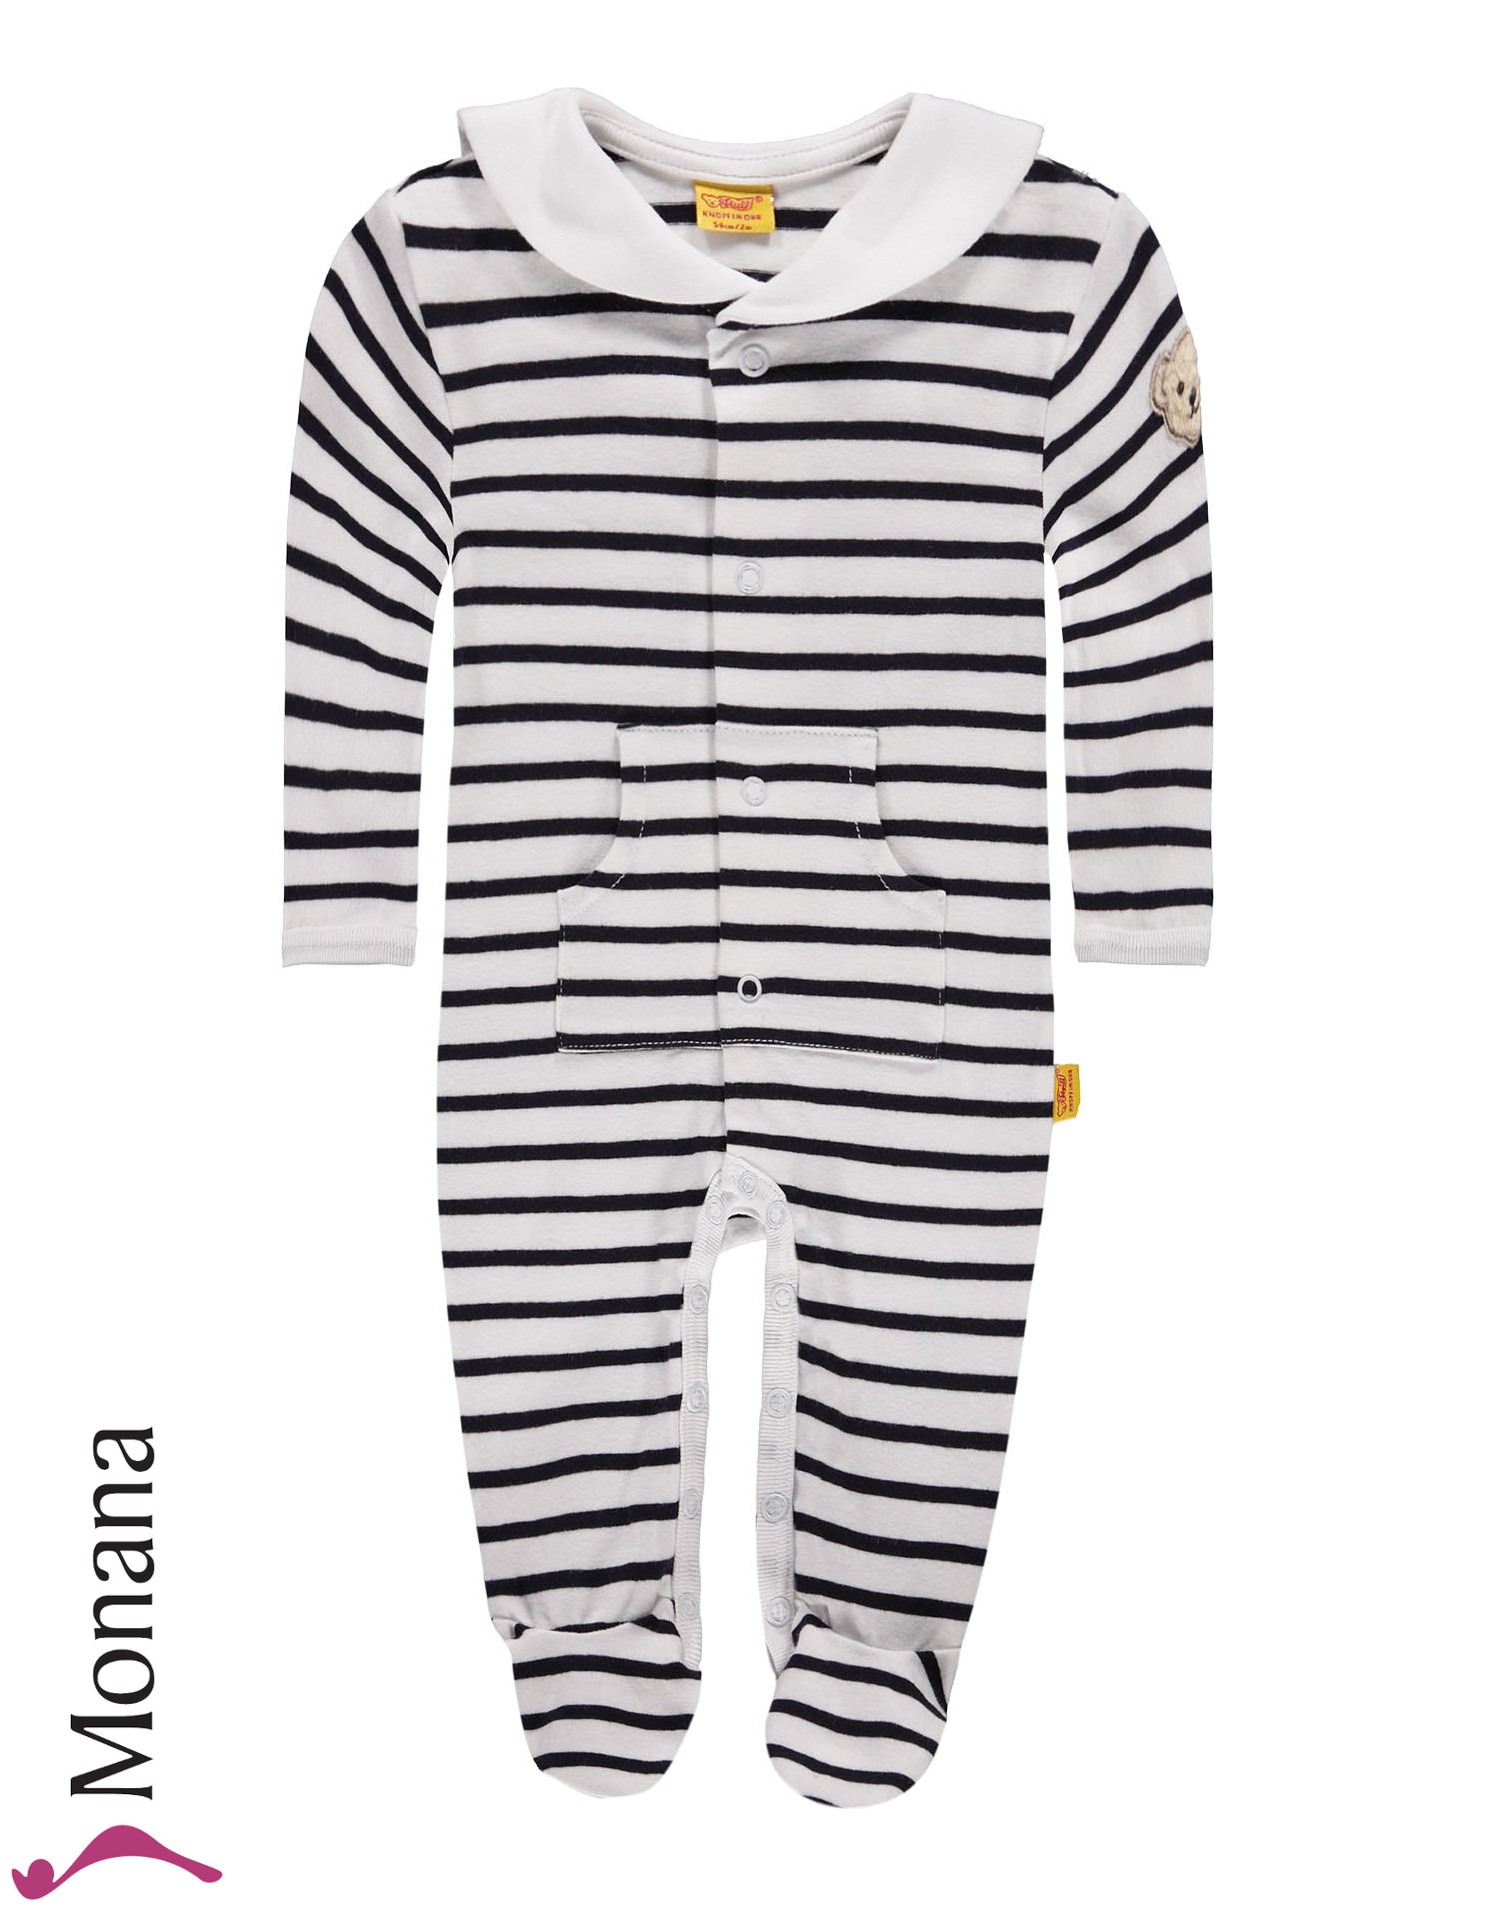 Steiff Collection Baby-Strampler Little Pirat<br>Größe: 50, 56, 68, 74